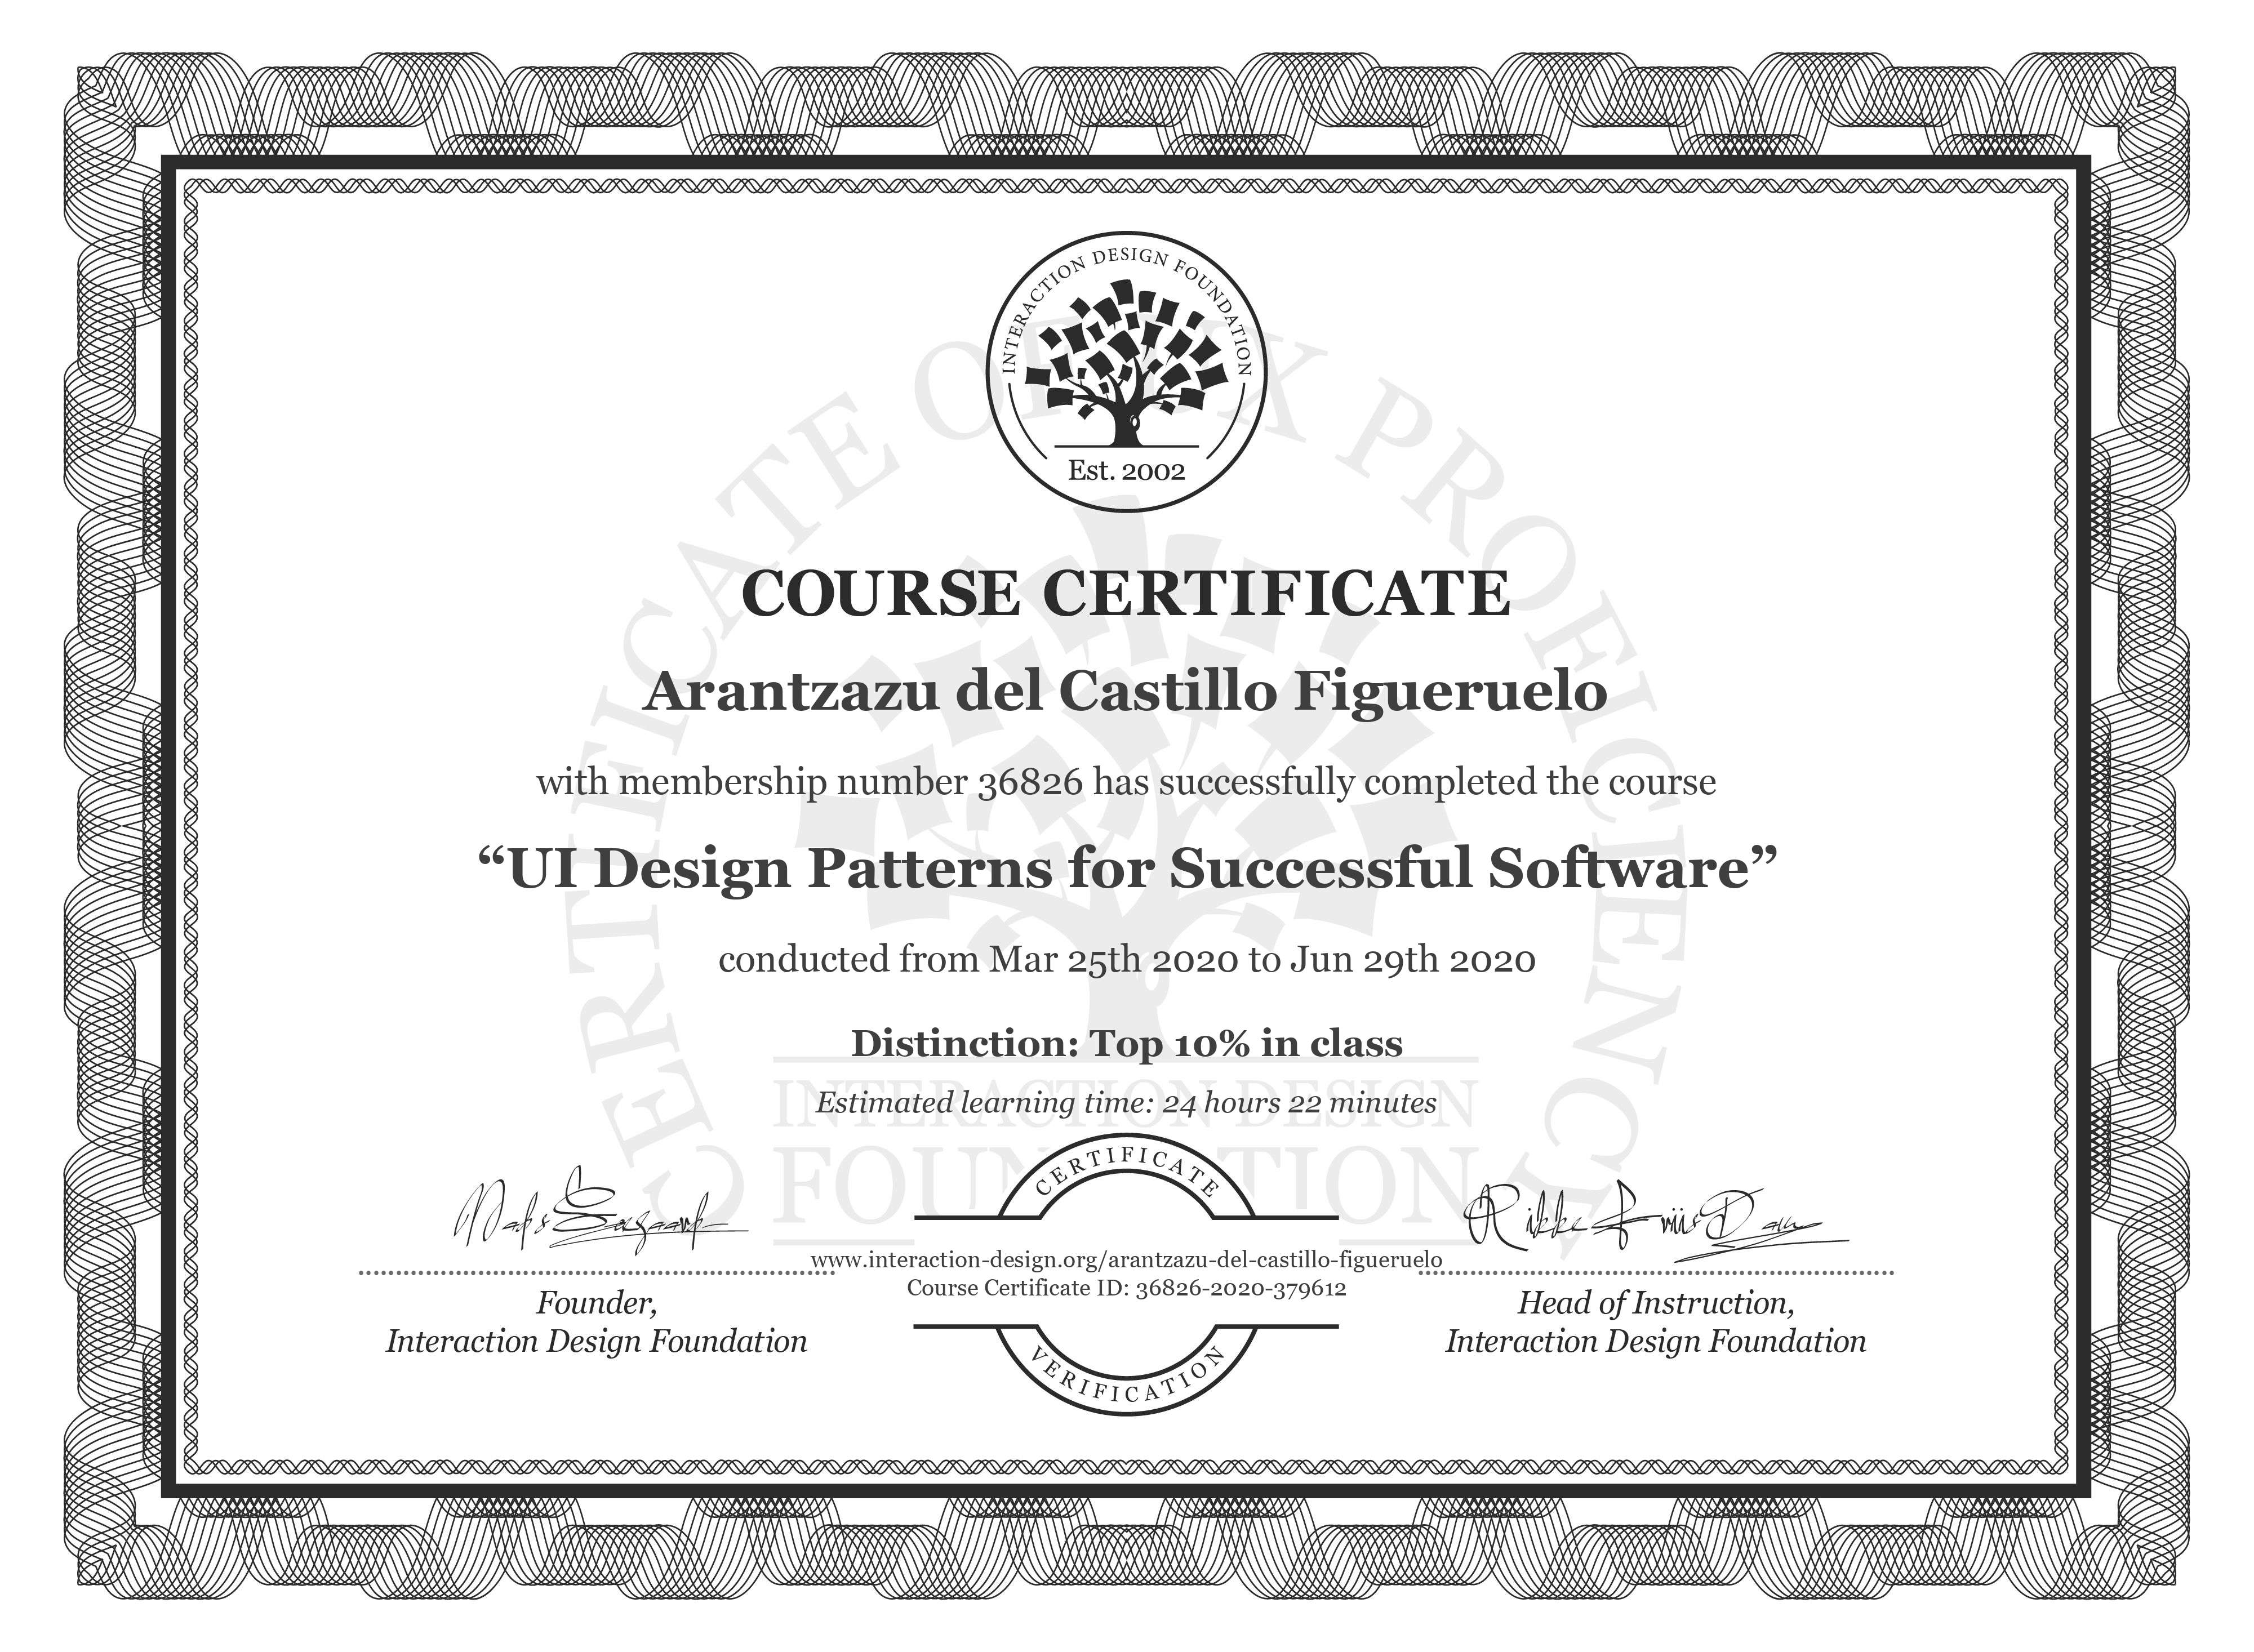 Arantzazu del Castillo Figueruelo's Course Certificate: UI Design Patterns for Successful Software